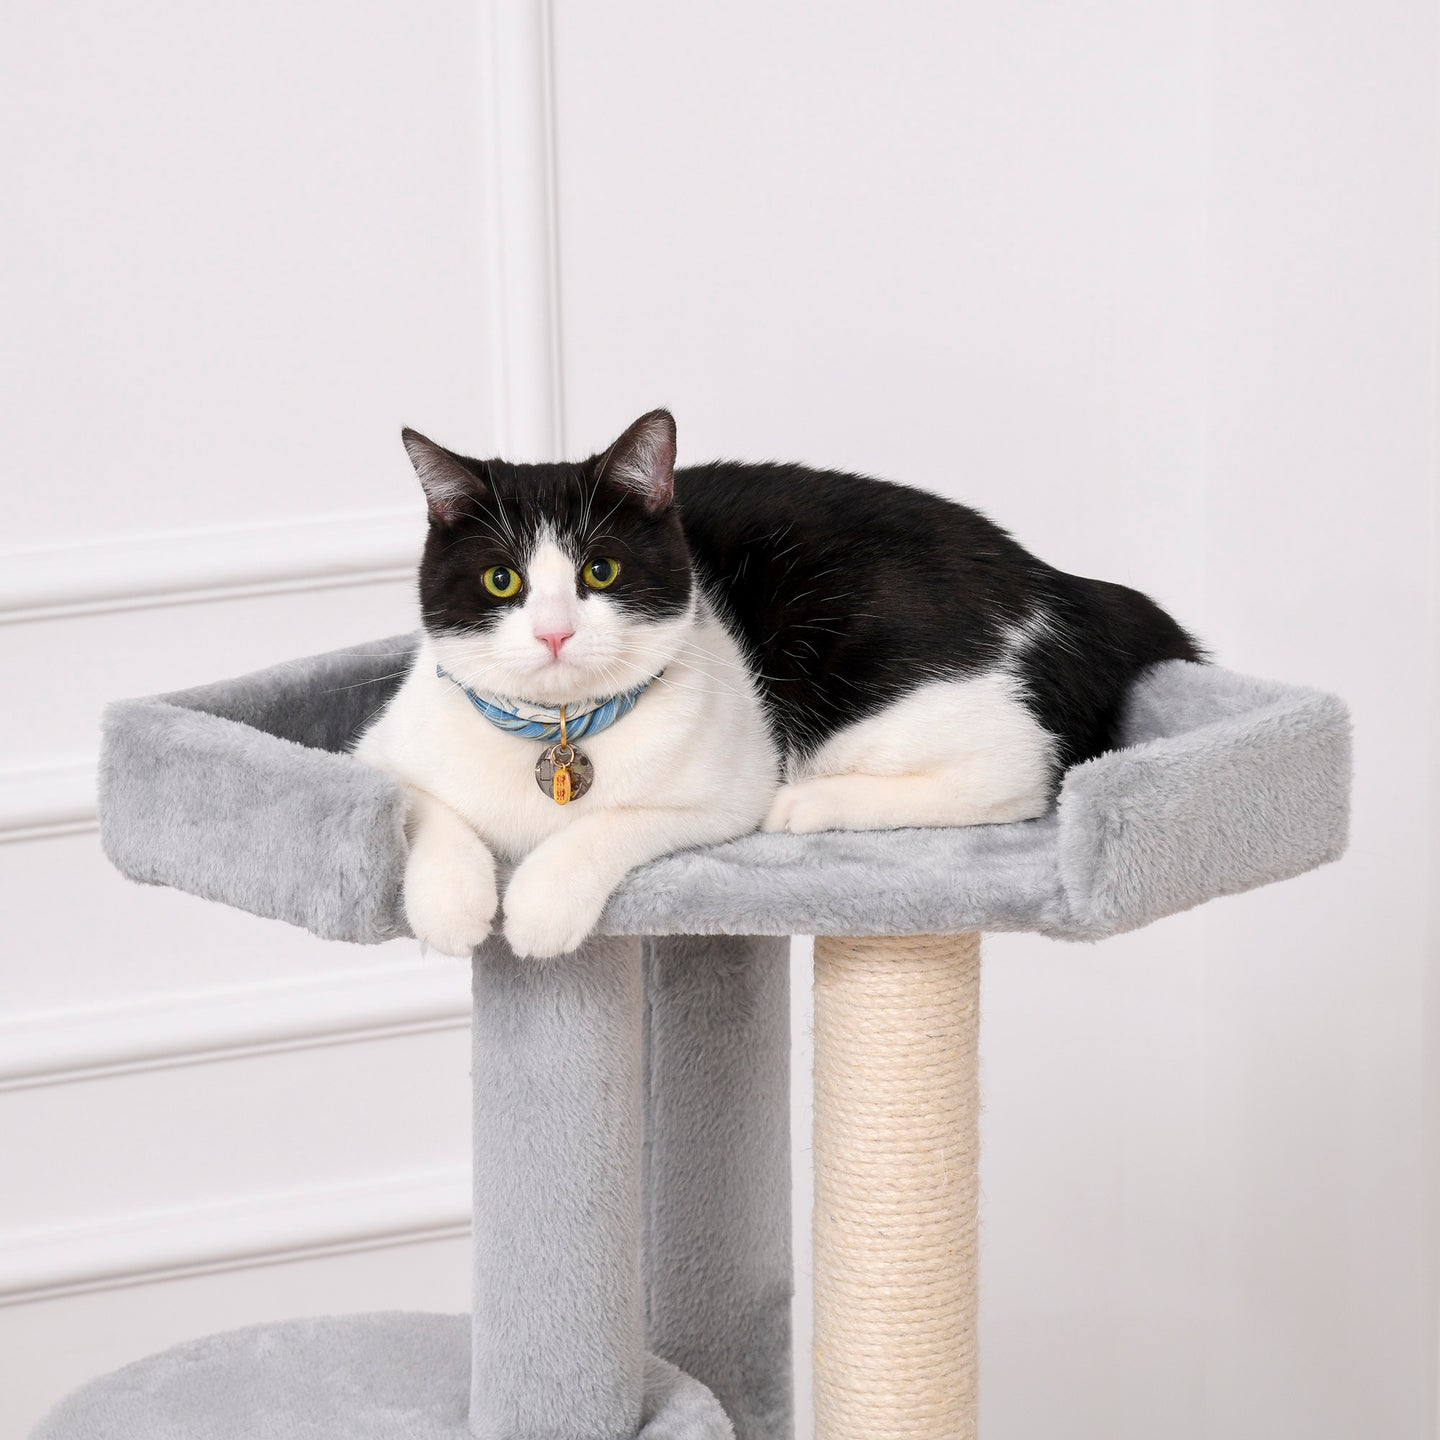 PawHut Cat Tree Kitten Tower Multi-level Activity Centre Pet Furniture with Scratching Post Condo Hanging Ropes Plush Perches Grey